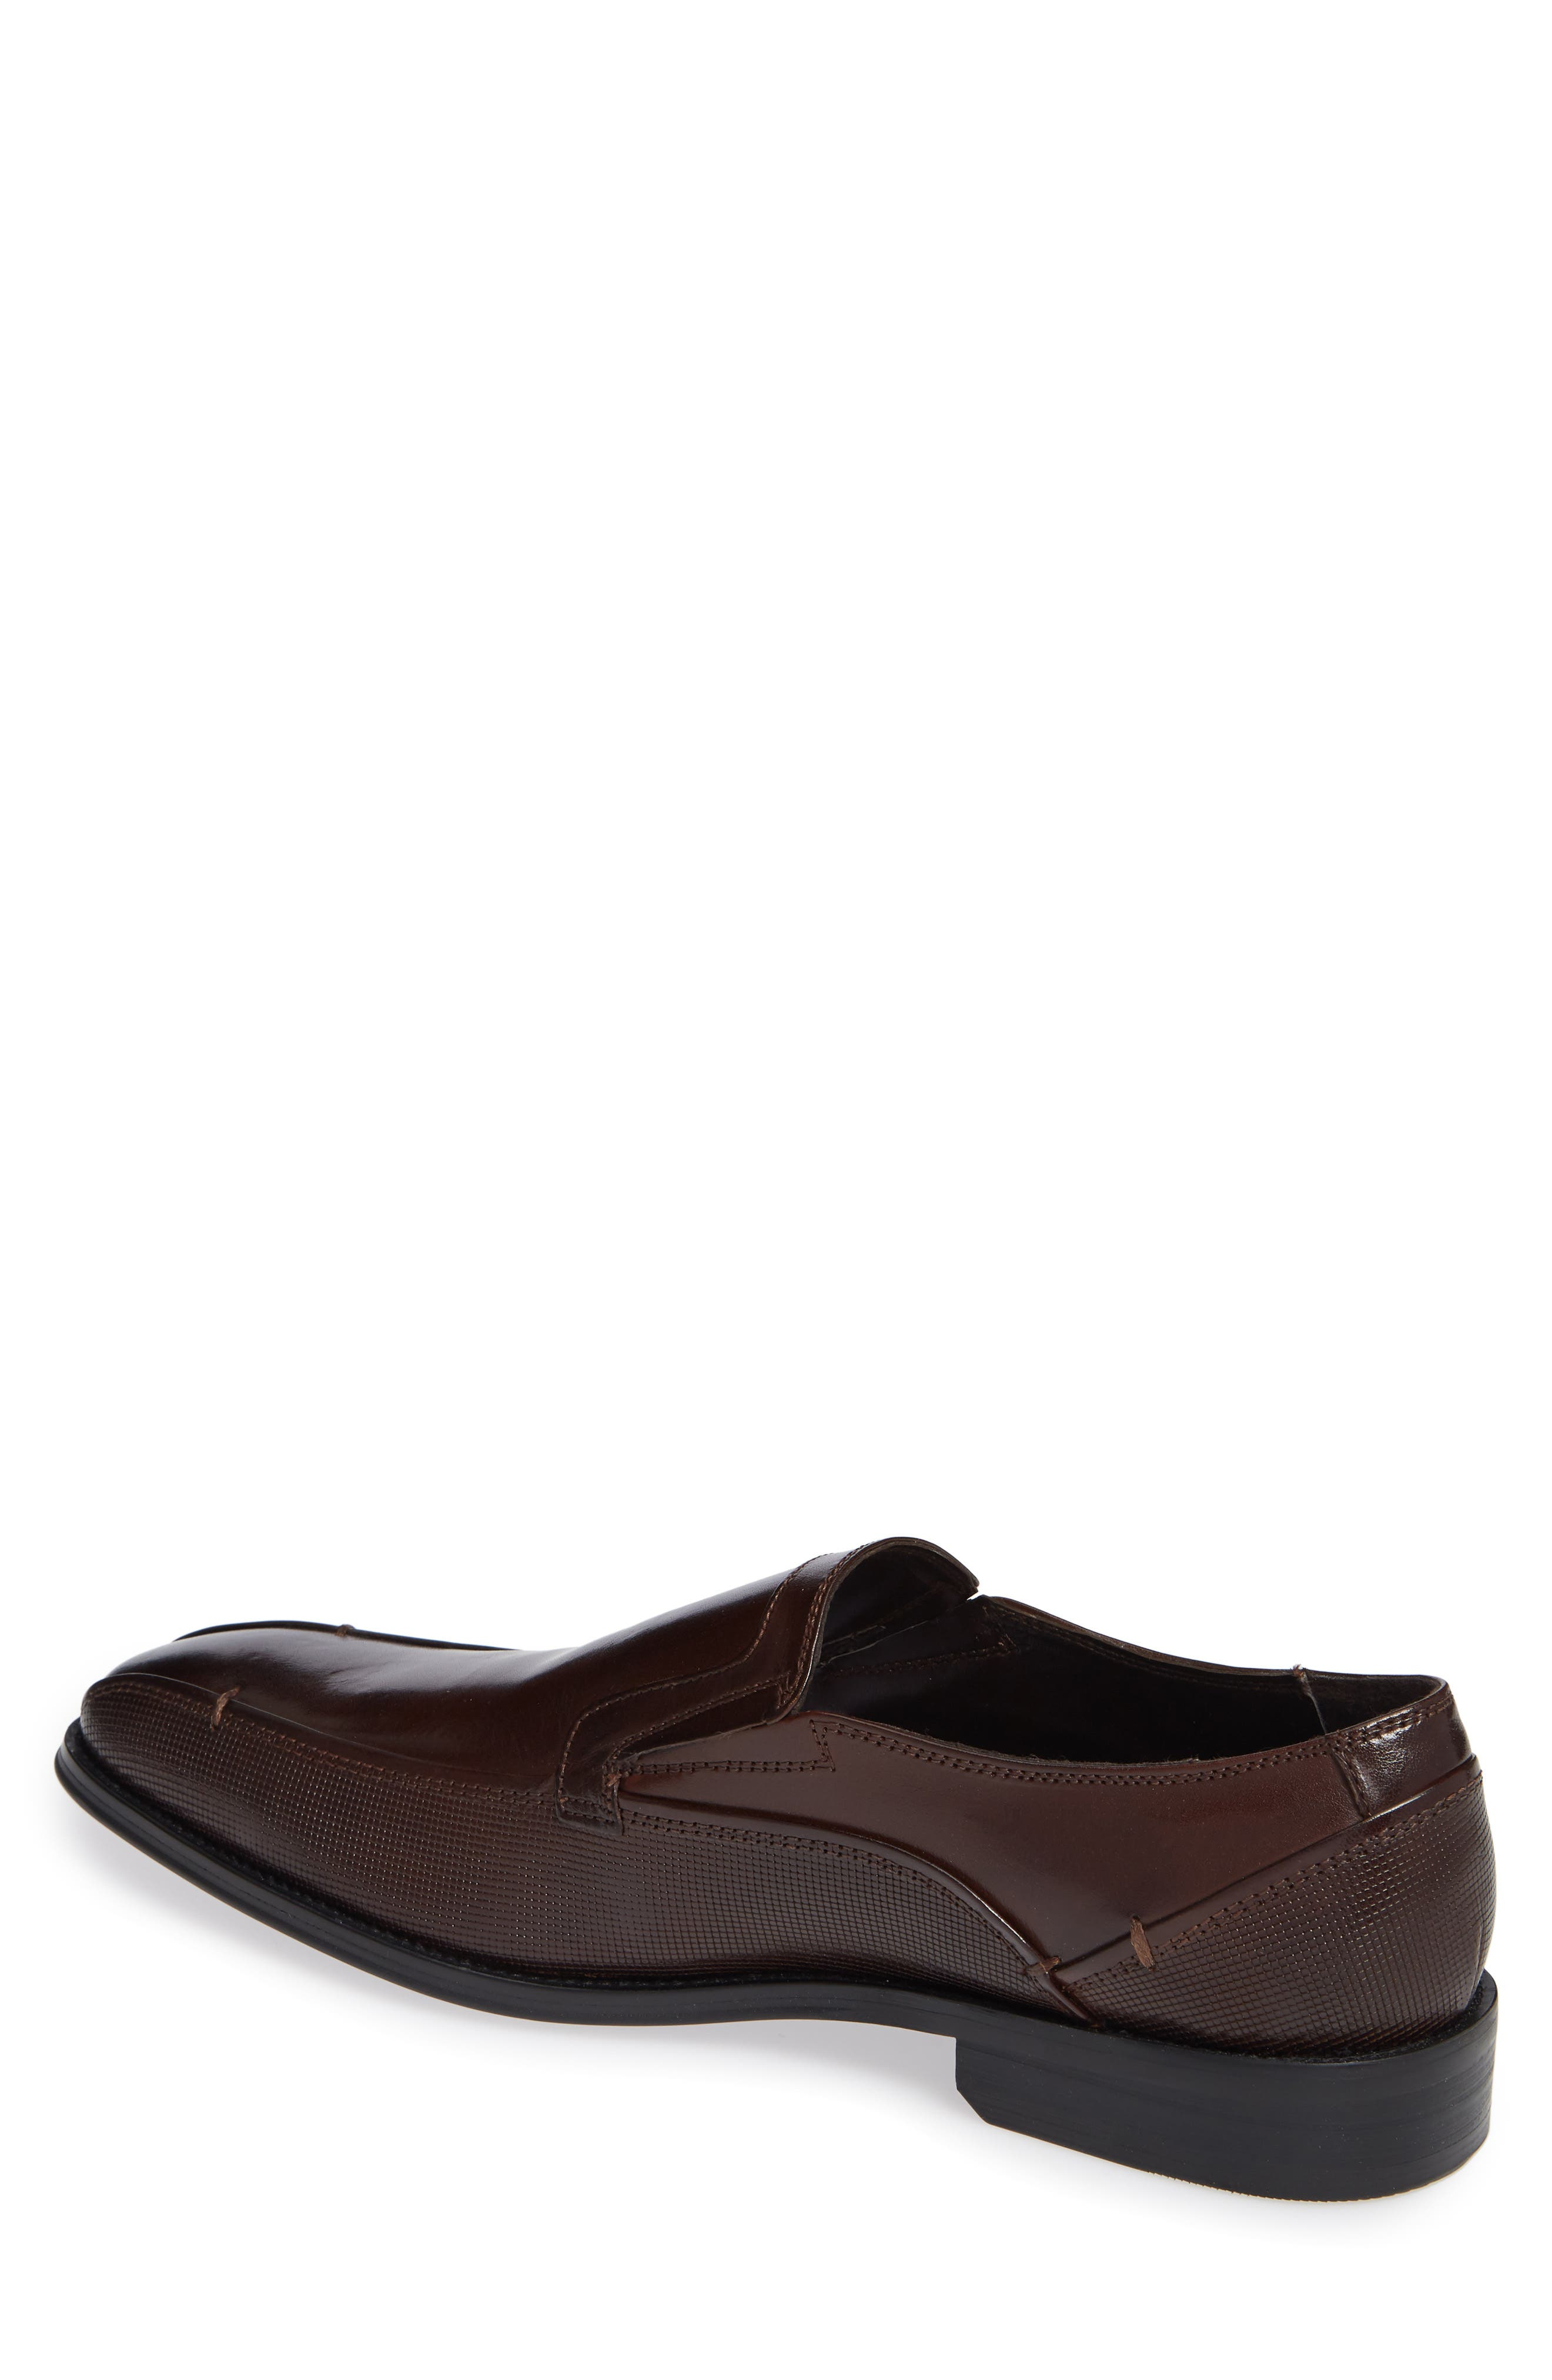 Witter Bike Toe Loafer,                             Alternate thumbnail 2, color,                             BROWN LEATHER